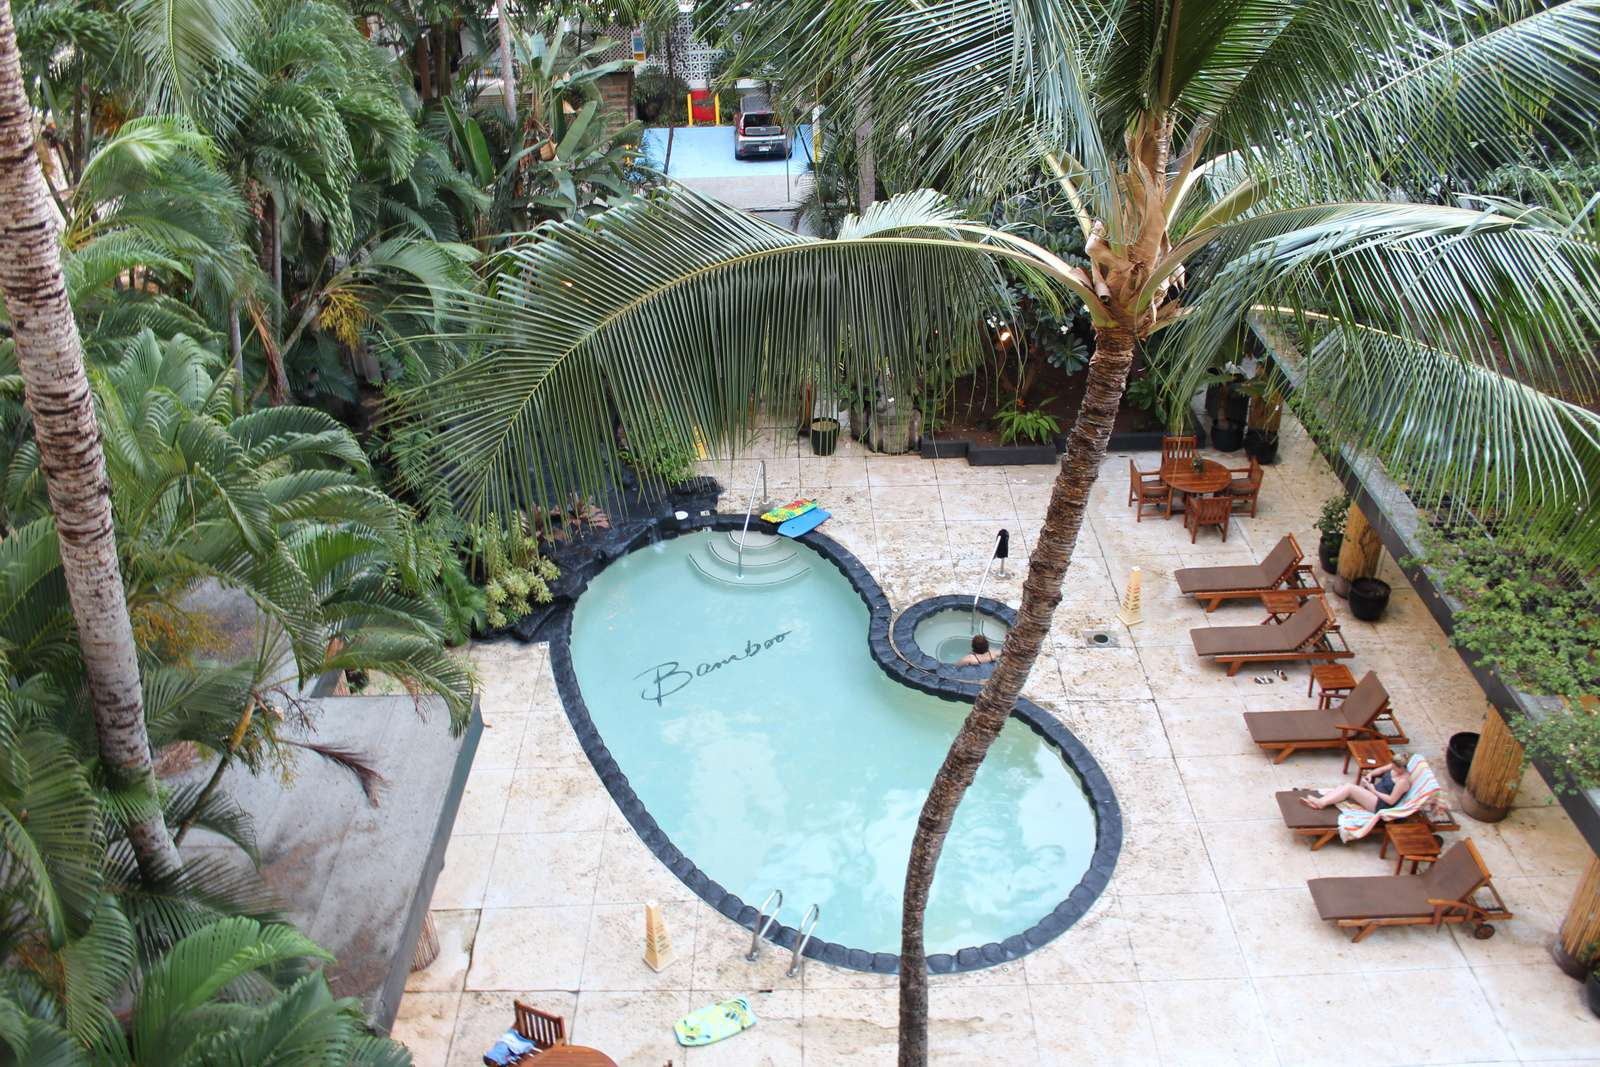 Our pool area is quiet and lush in the heart of Waikiki